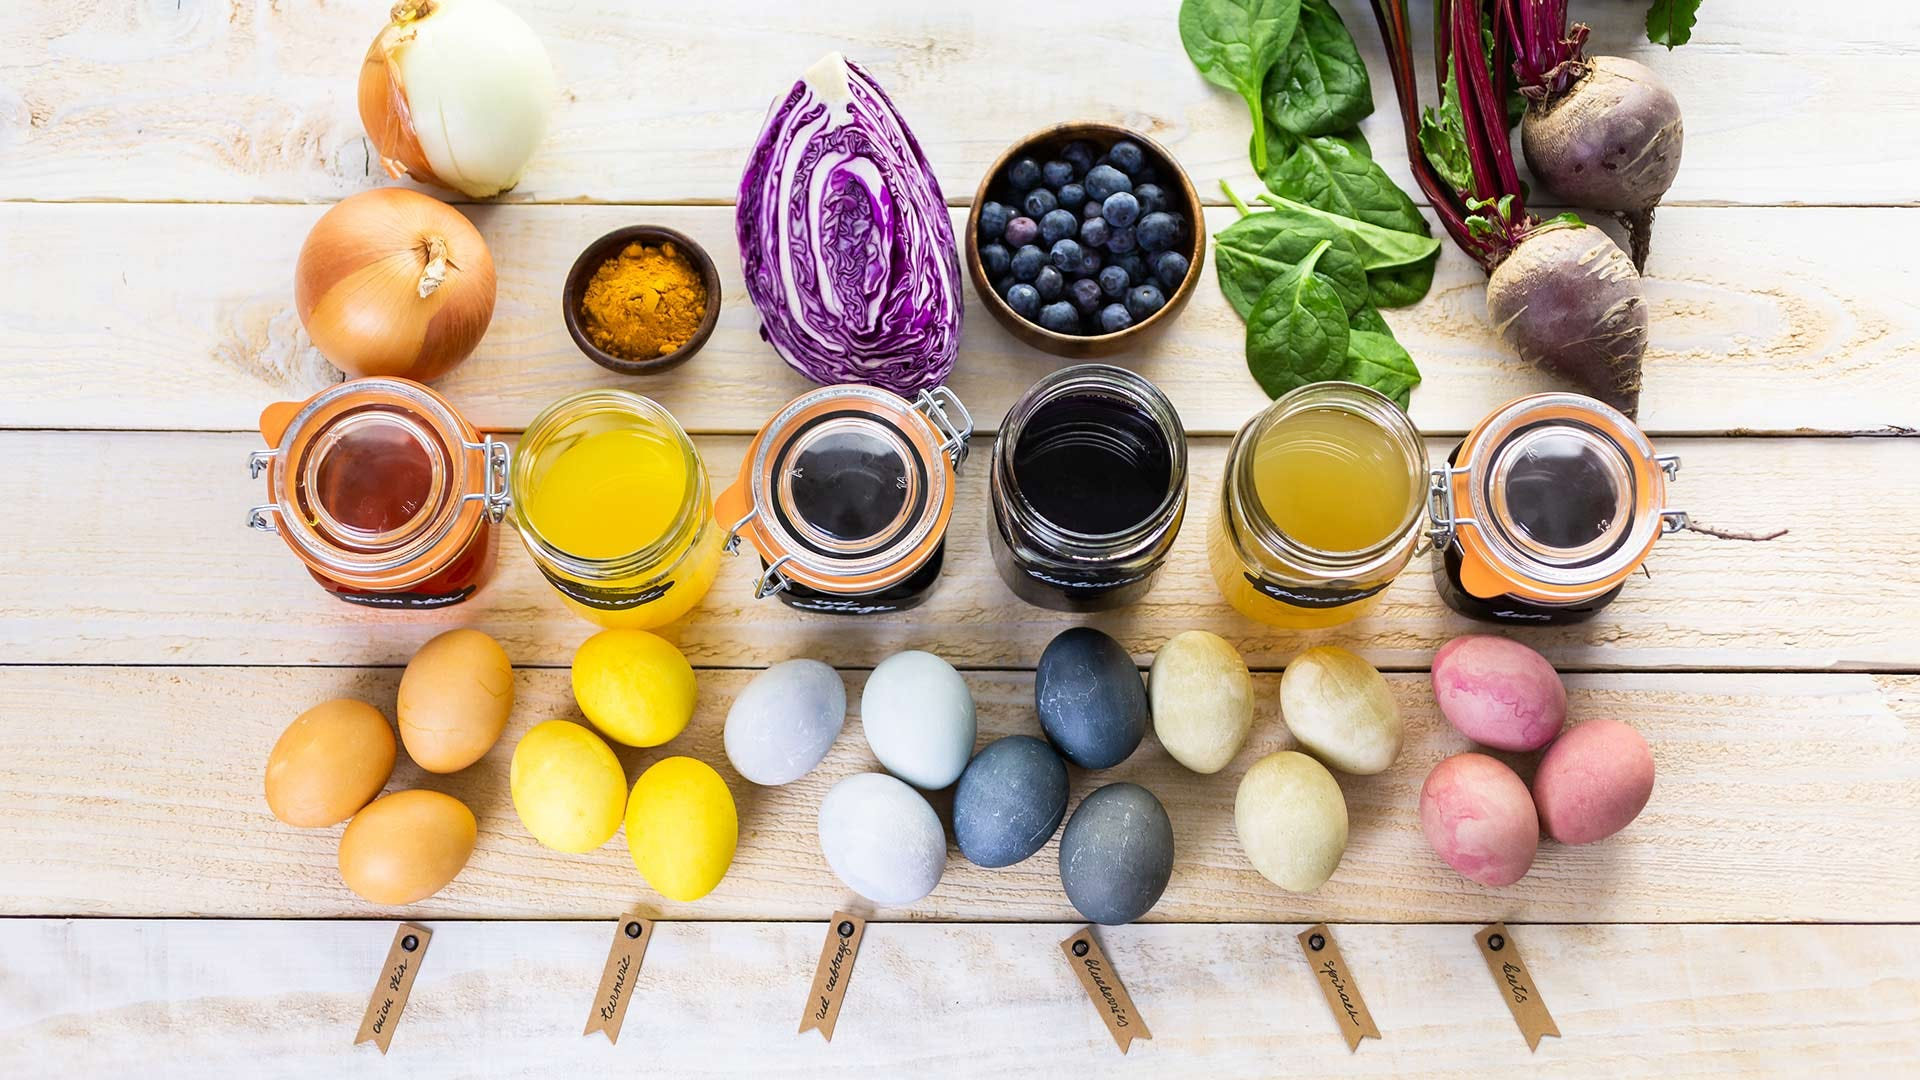 Examples of natural color dyes created with common vegetables, fruits, and spices.